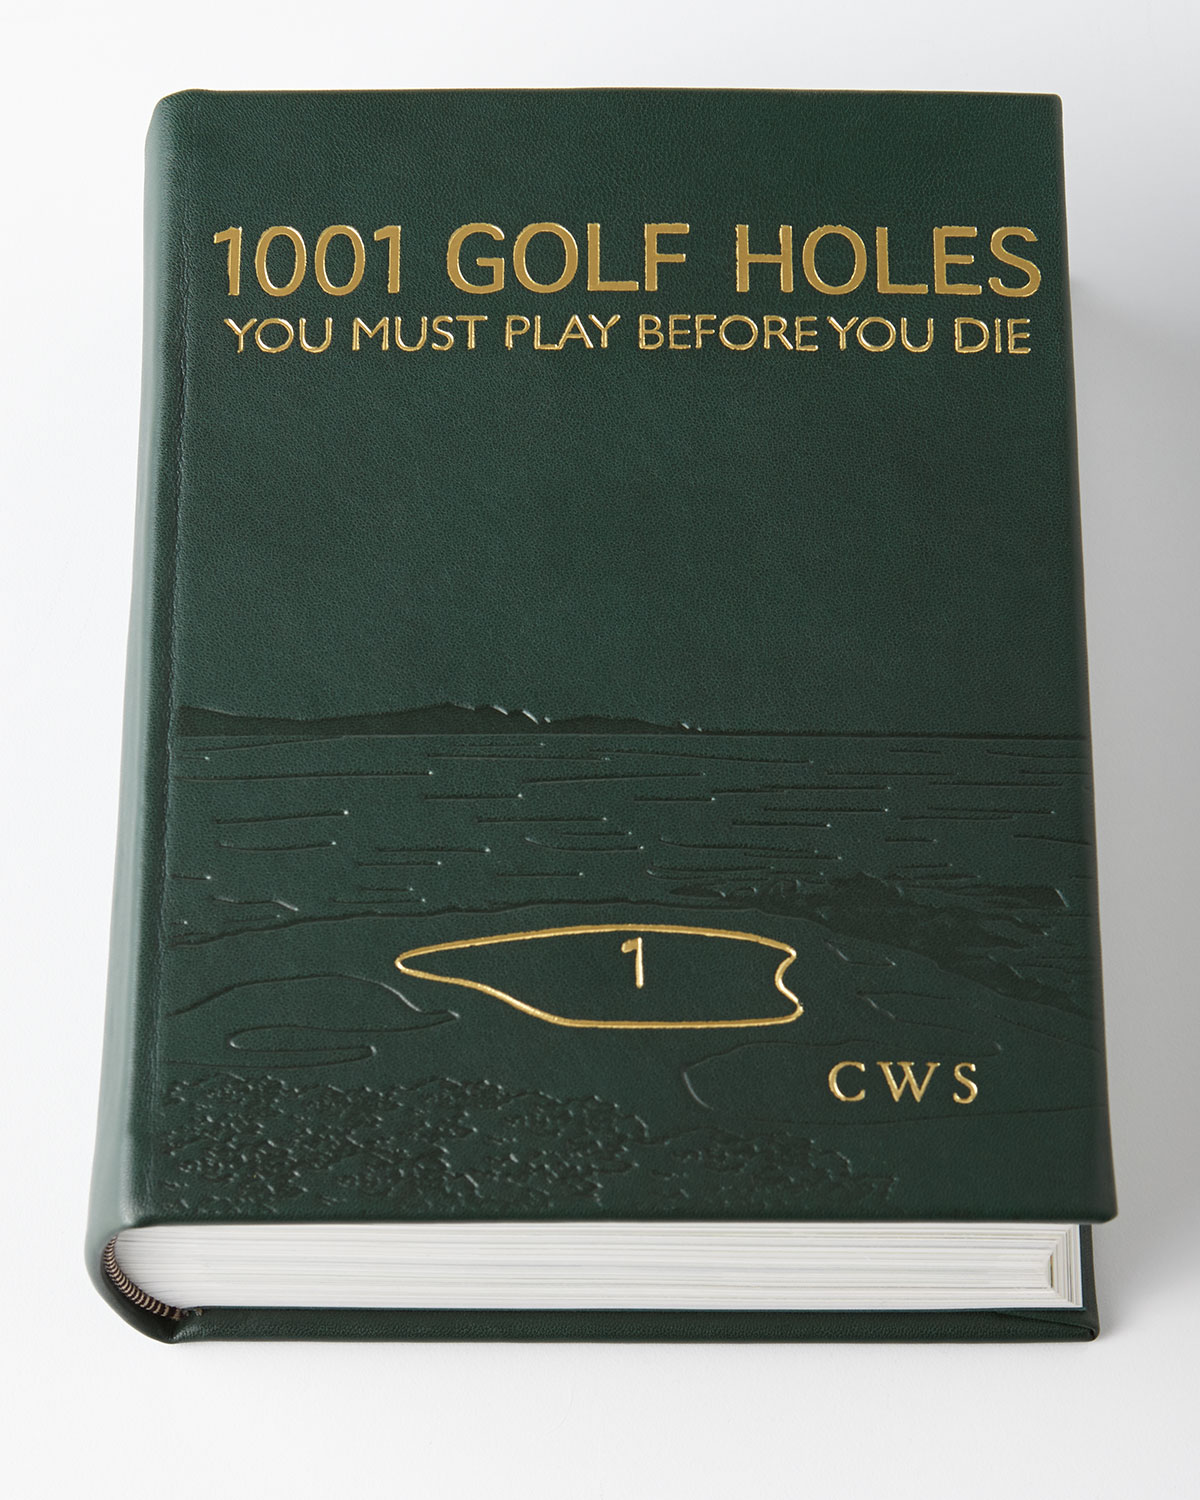 1001 Golf Holes You Must Play Before You Die encourages you to live your ultimate golfing fantasy at the world's premier courses. Gives insight into how to play the hole, the designer's intention, and the history of the greats who have played there. Features over 500 full color photographs of the most beautiful, challenging, and memorable golf holes in the world chosen by a team of international writers and golf experts. Hardcover book bound in full-grain leather. Personalization is three ini.